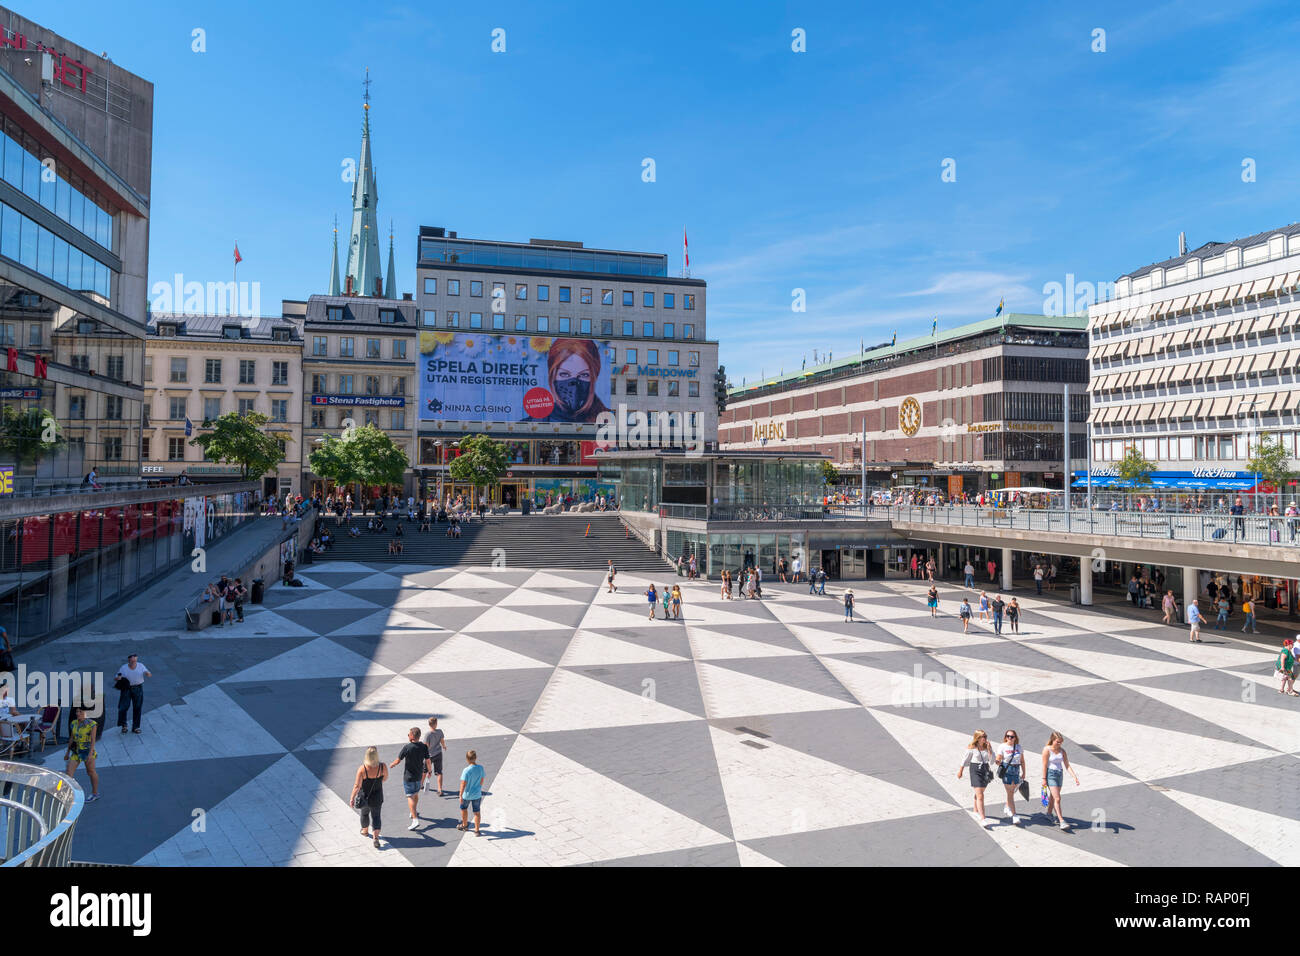 4d33aede1bf Sergels torg, a major public square in the city centre, Norrmalm,  Stockholm, Sweden